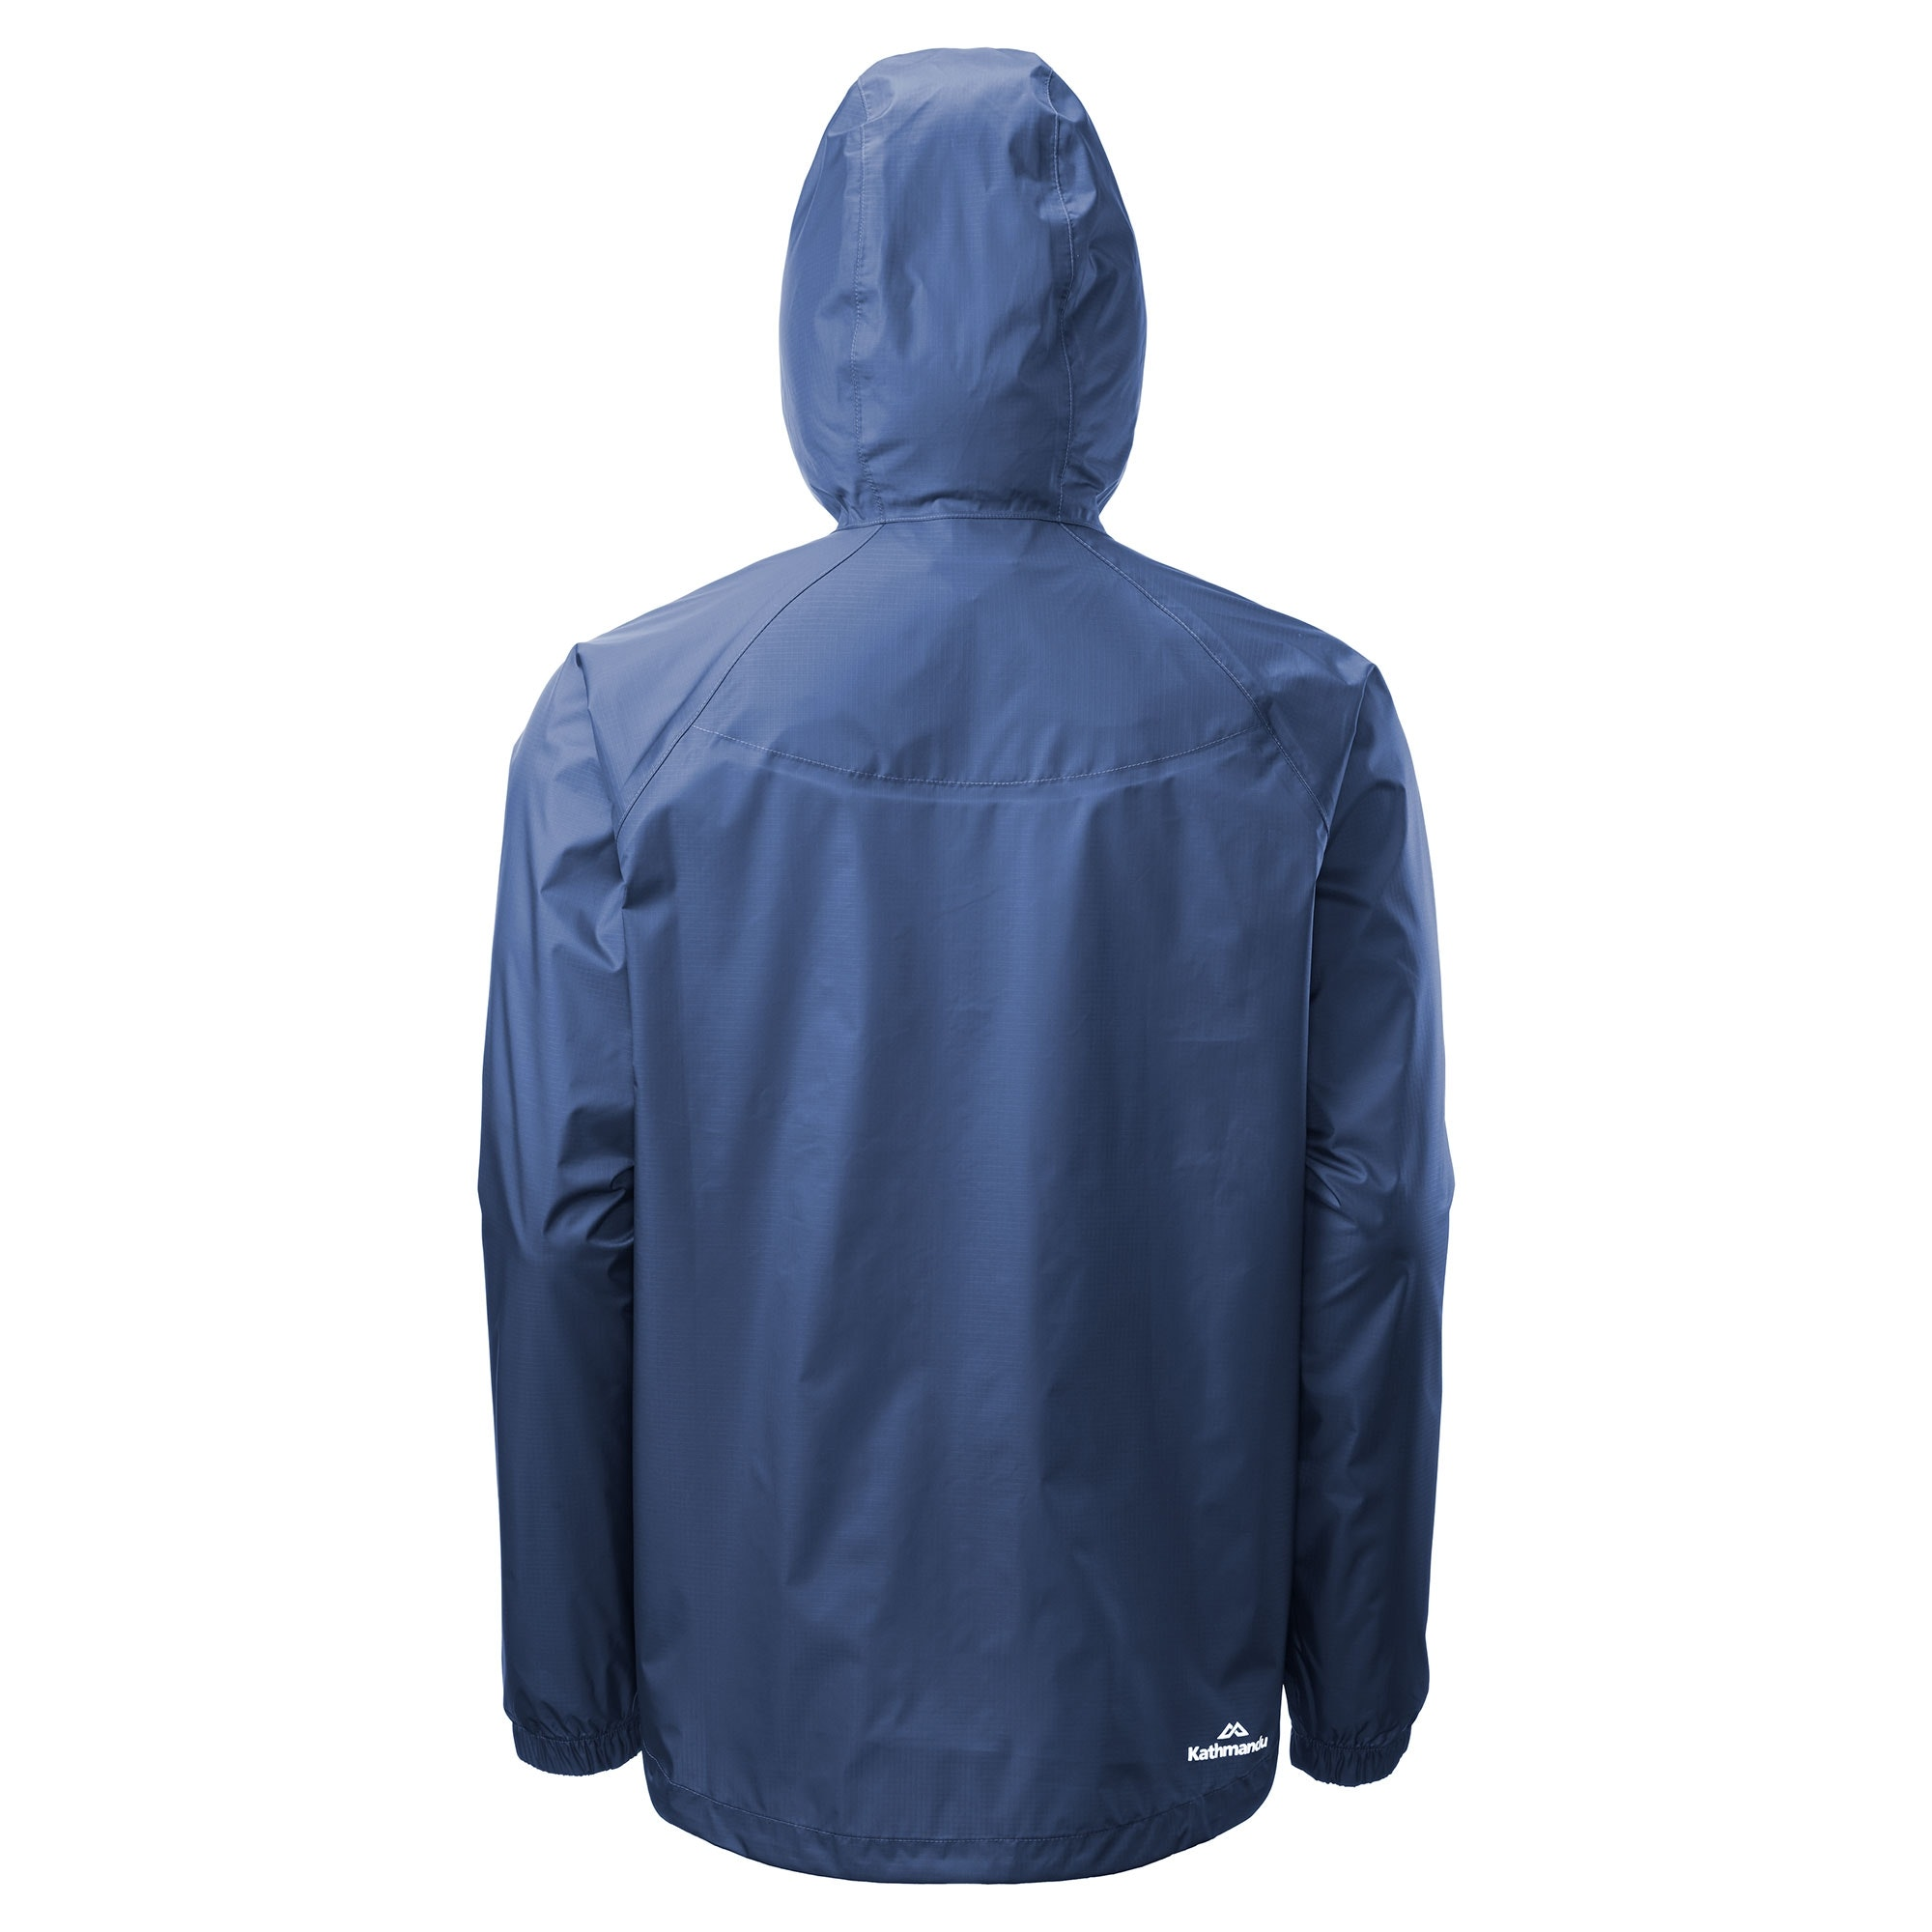 Kathmandu-Pocket-it-Men-039-s-Hooded-Water-Resistant-Packaway-Light-Rain-Jacket